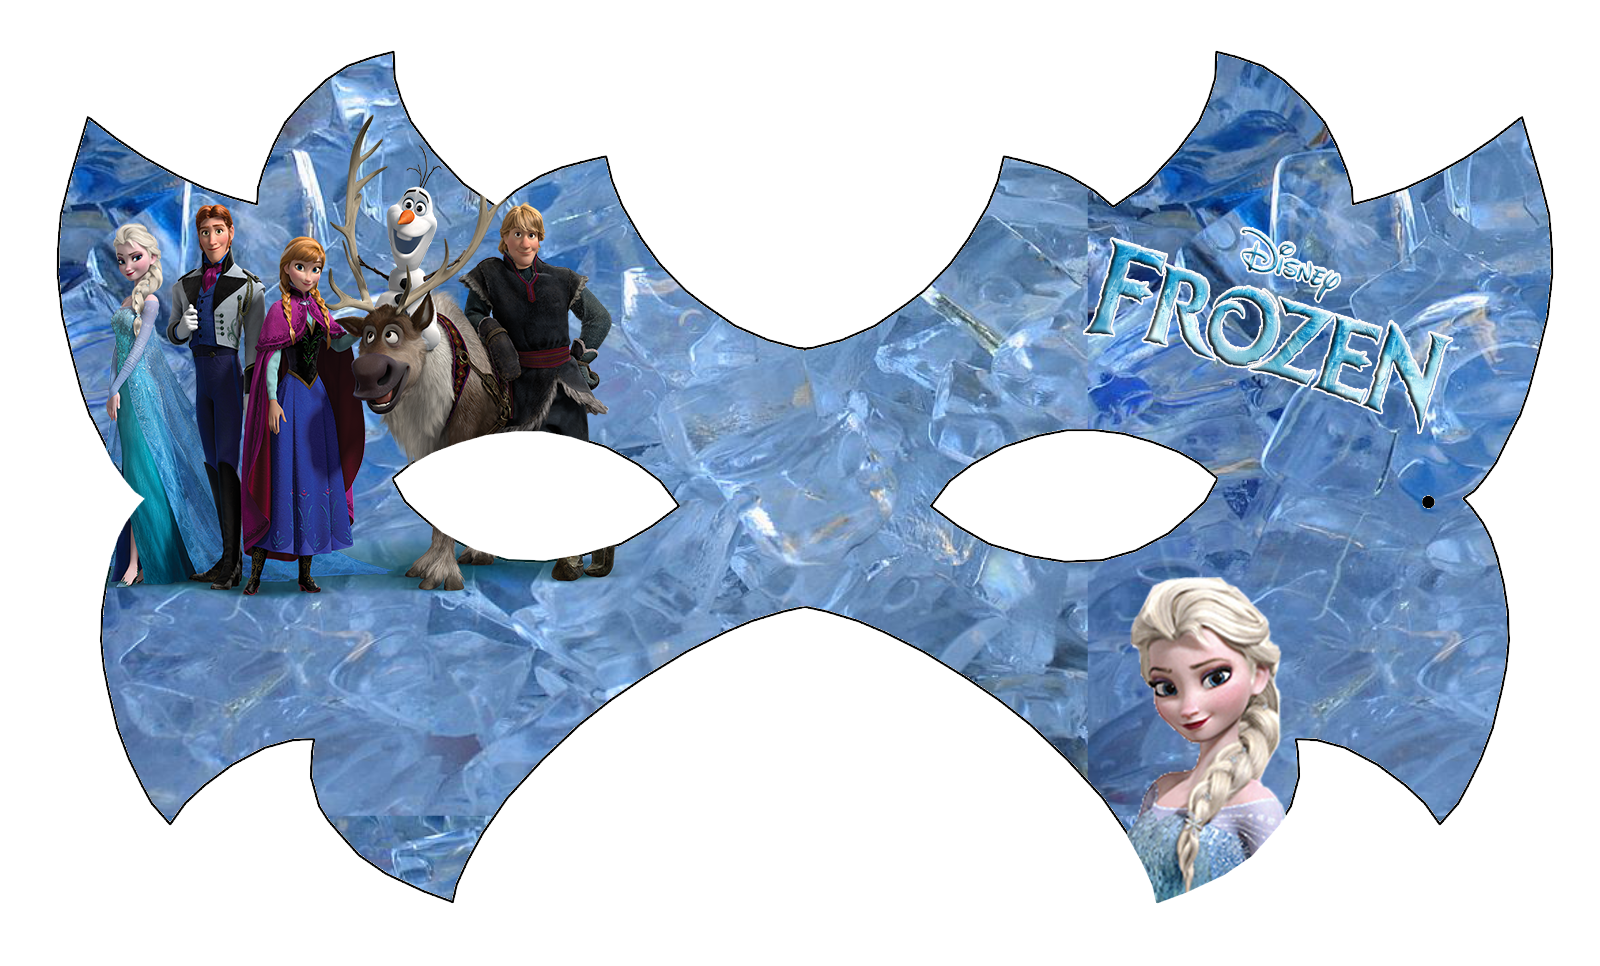 Frozen Free Printable Mask Is It For PARTIES